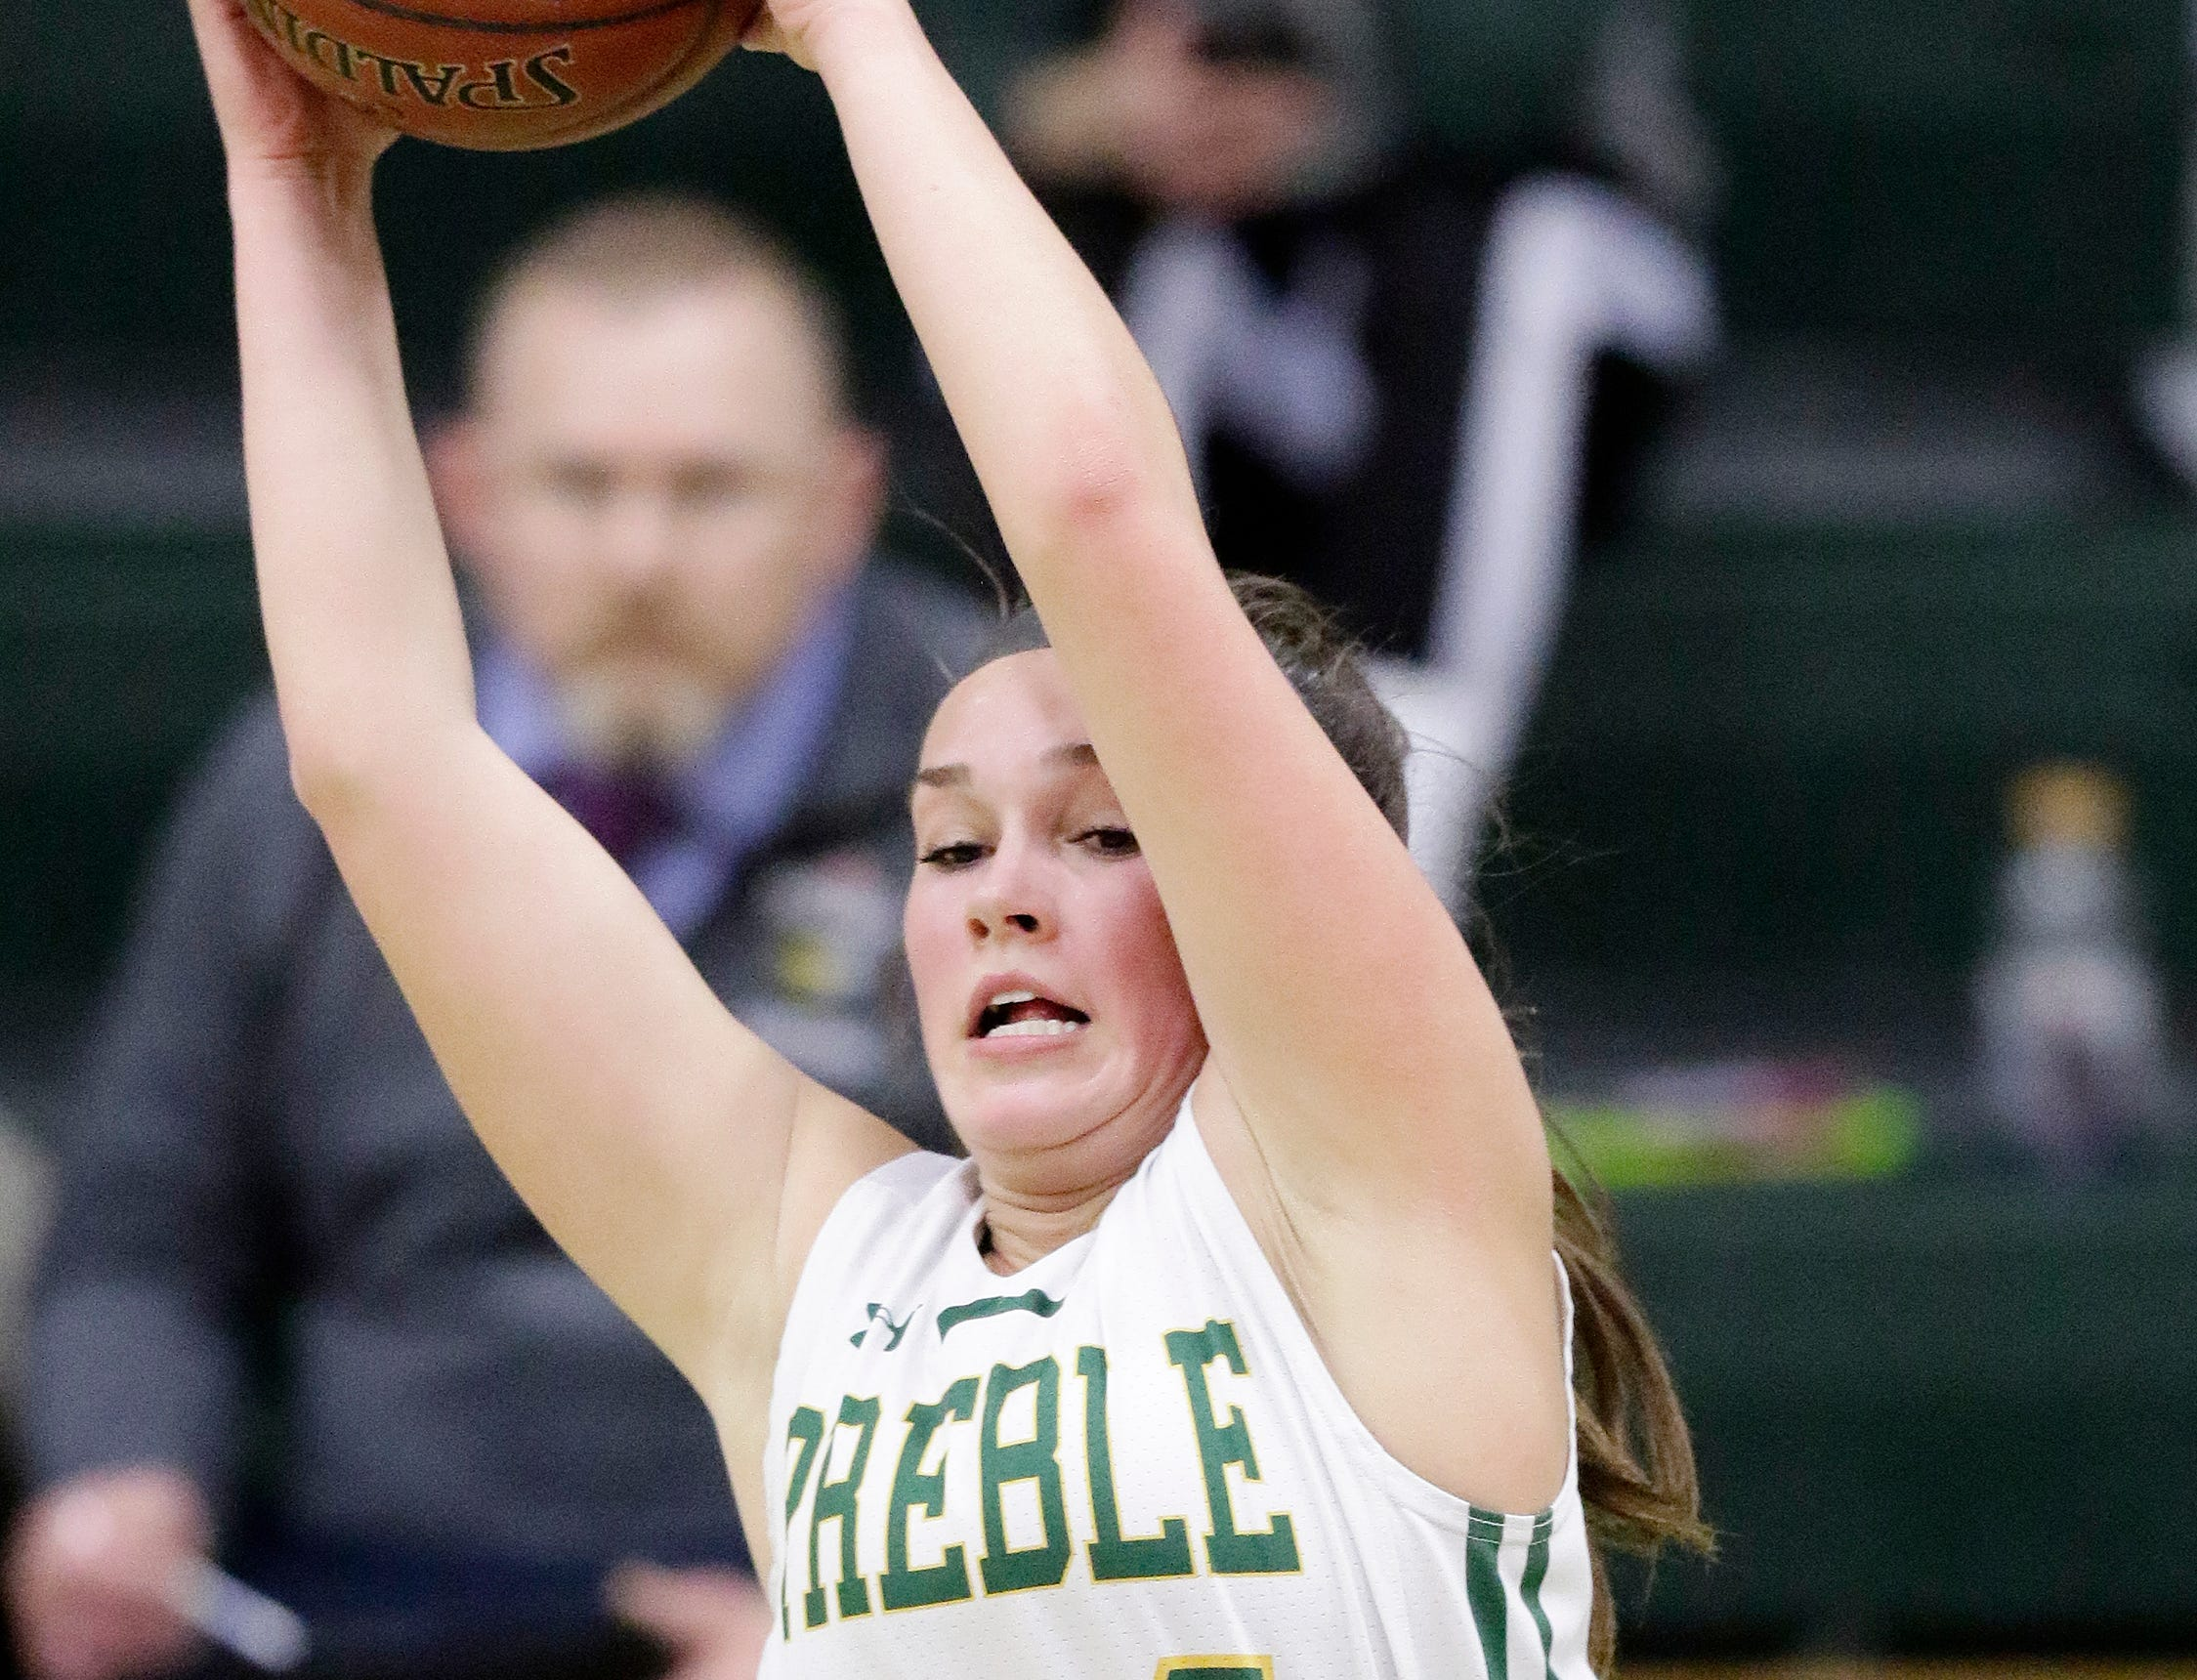 Green Bay Preble's Ella Bialkowski (24) receives a pass under the hoop against De Pere in a girls basketball game at Preble high school on Tuesday, January 8, 2019 in Green Bay, Wis.